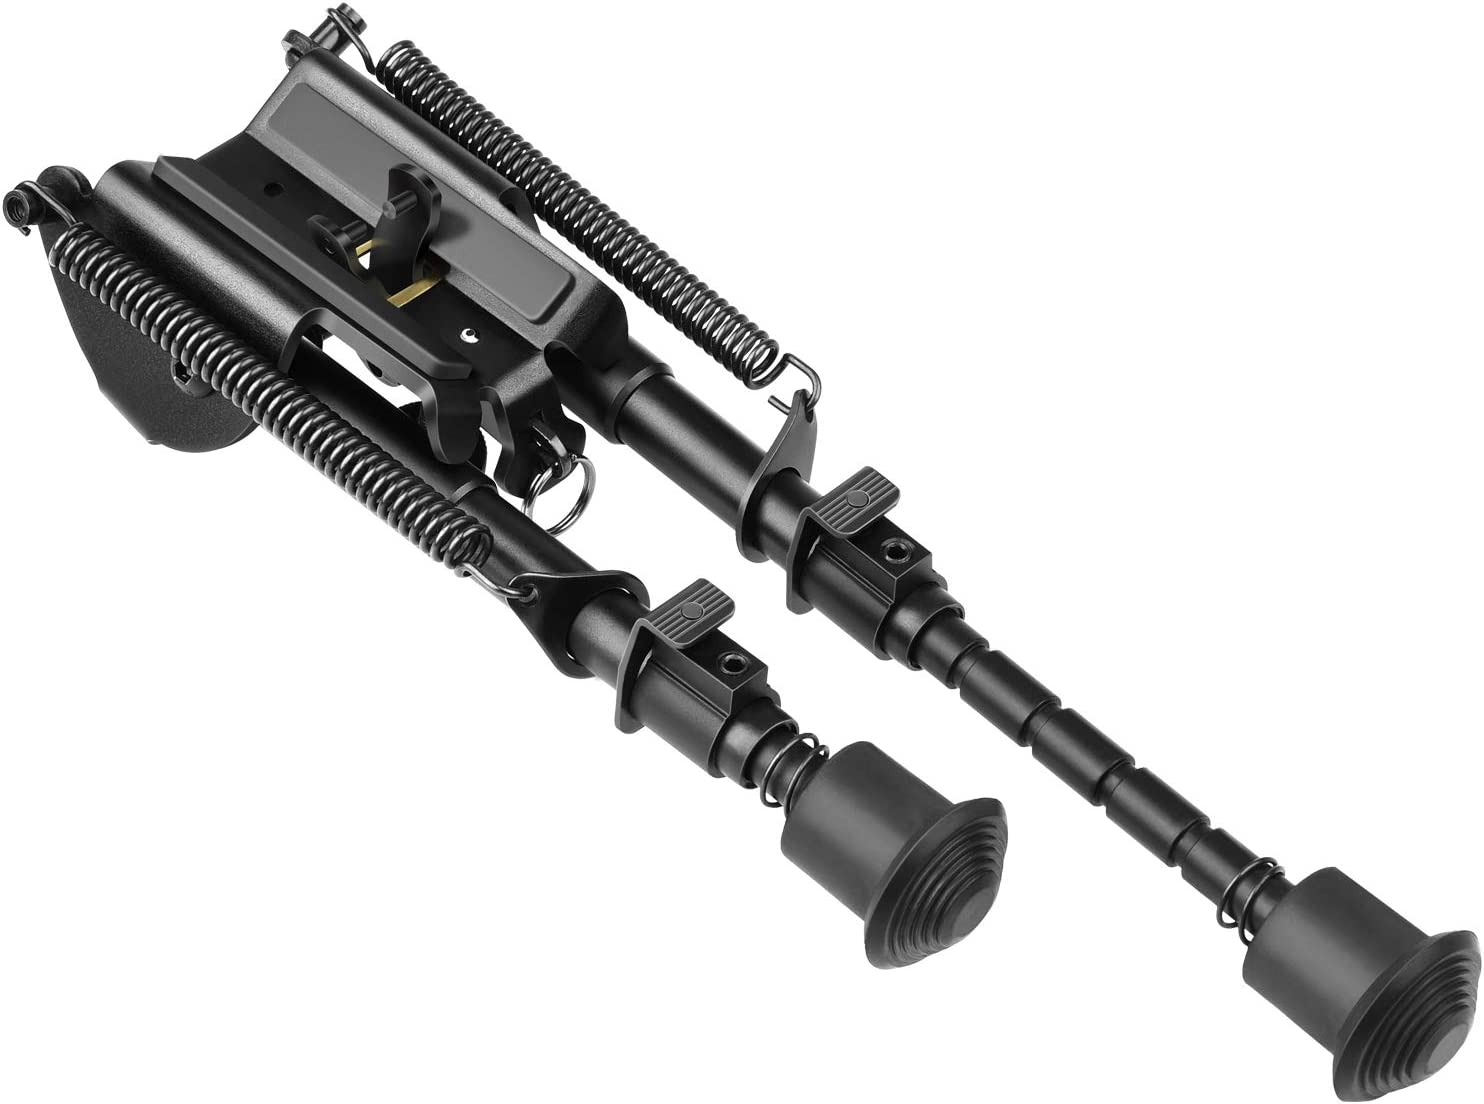 CVLIFE Hunting Bipod - 6 Inch to 9 Inch Adjustable Super Duty Tactical Bipod : Sports & Outdoors